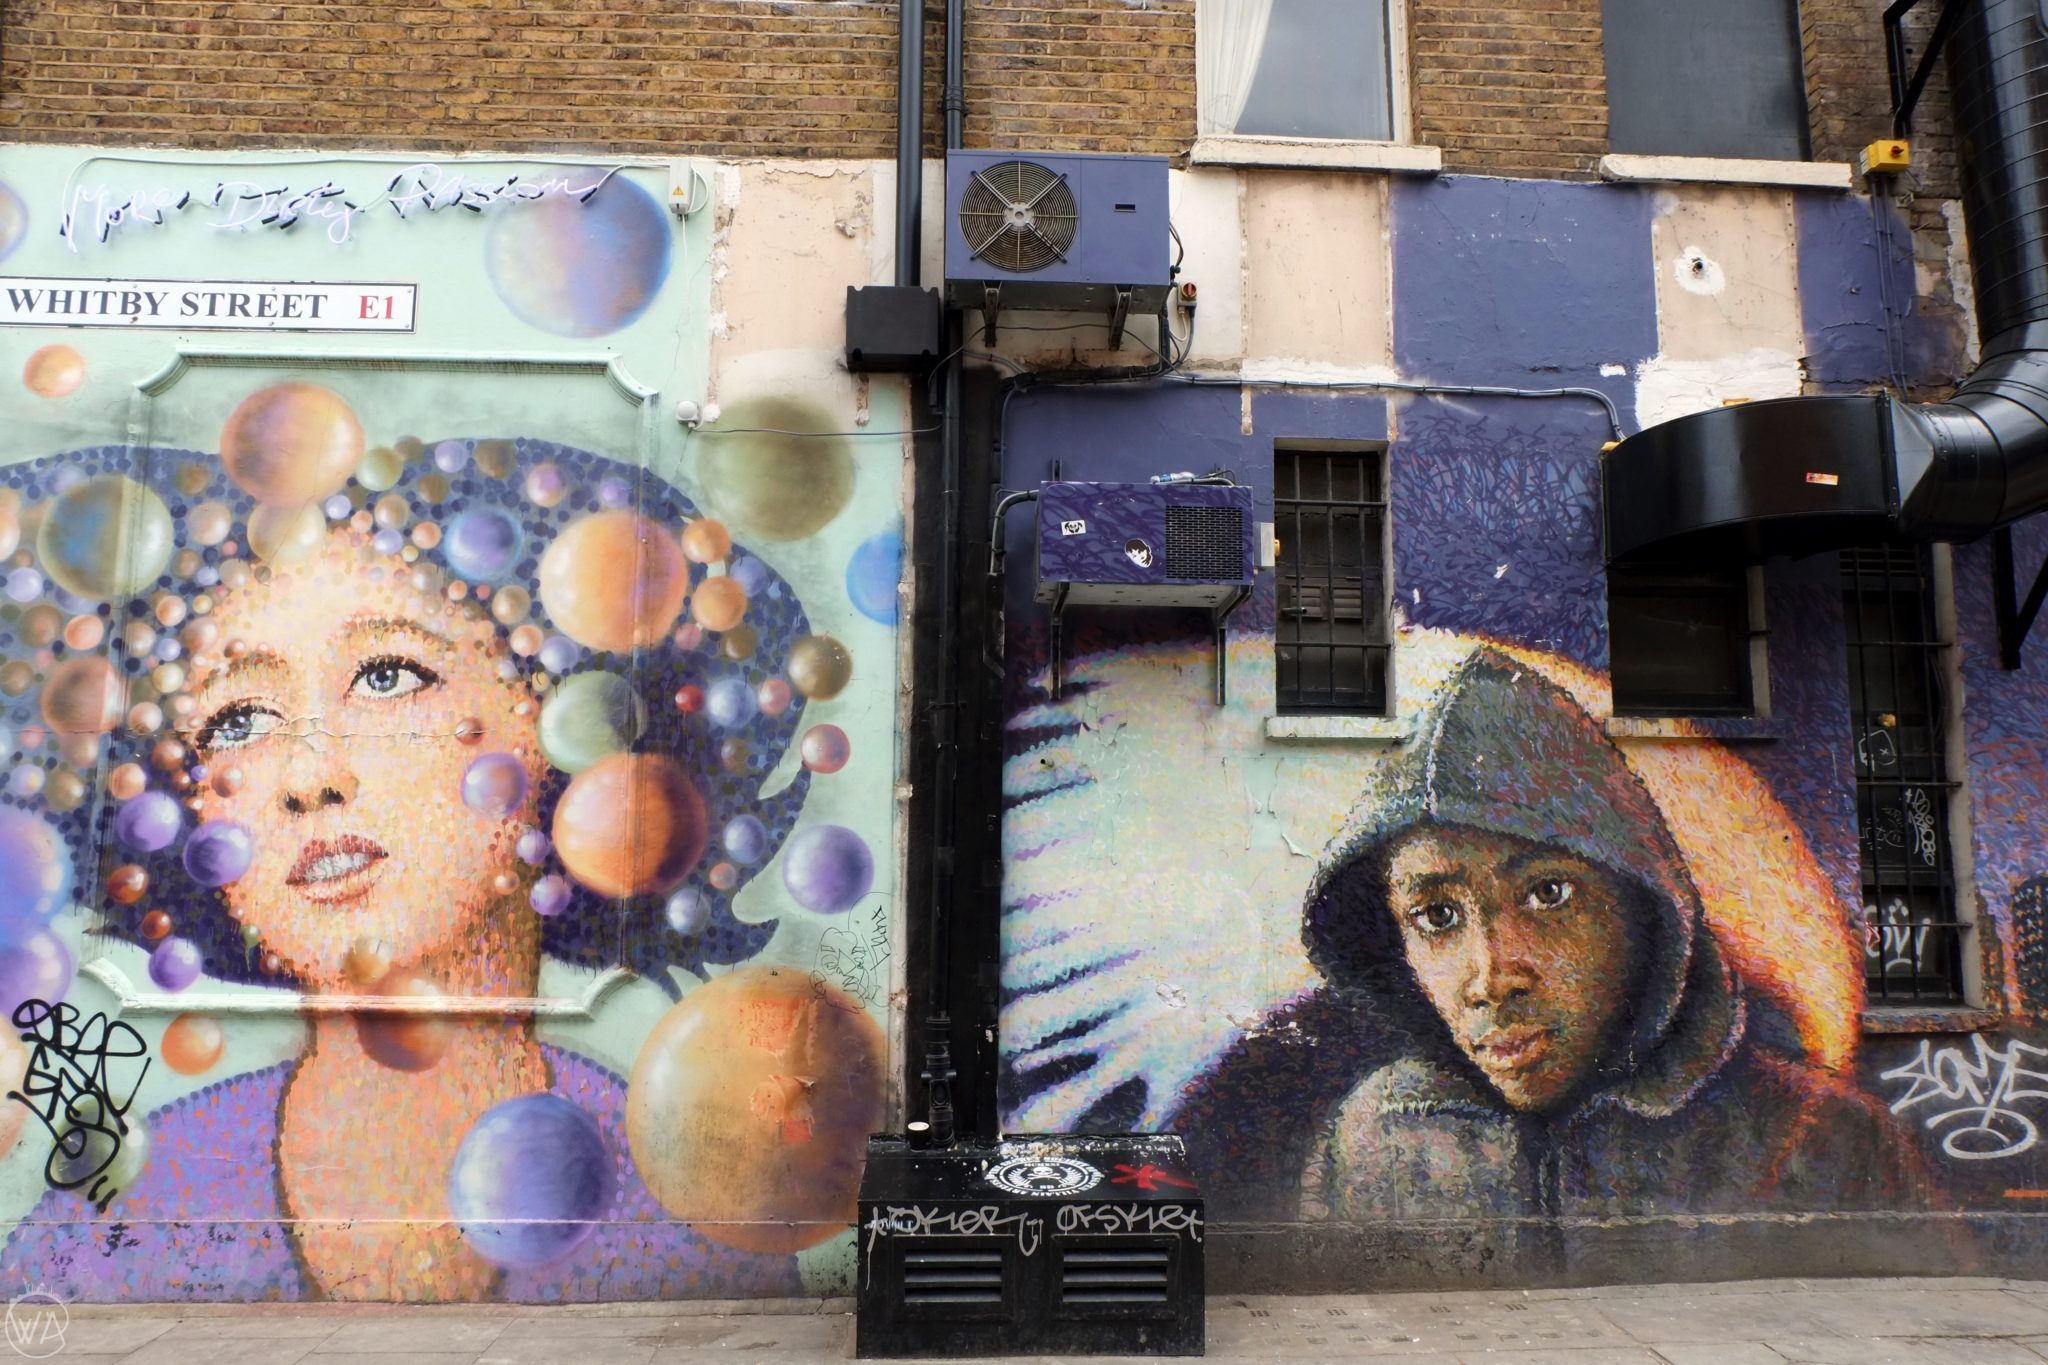 Street art of a woman and boy, brick lane, London